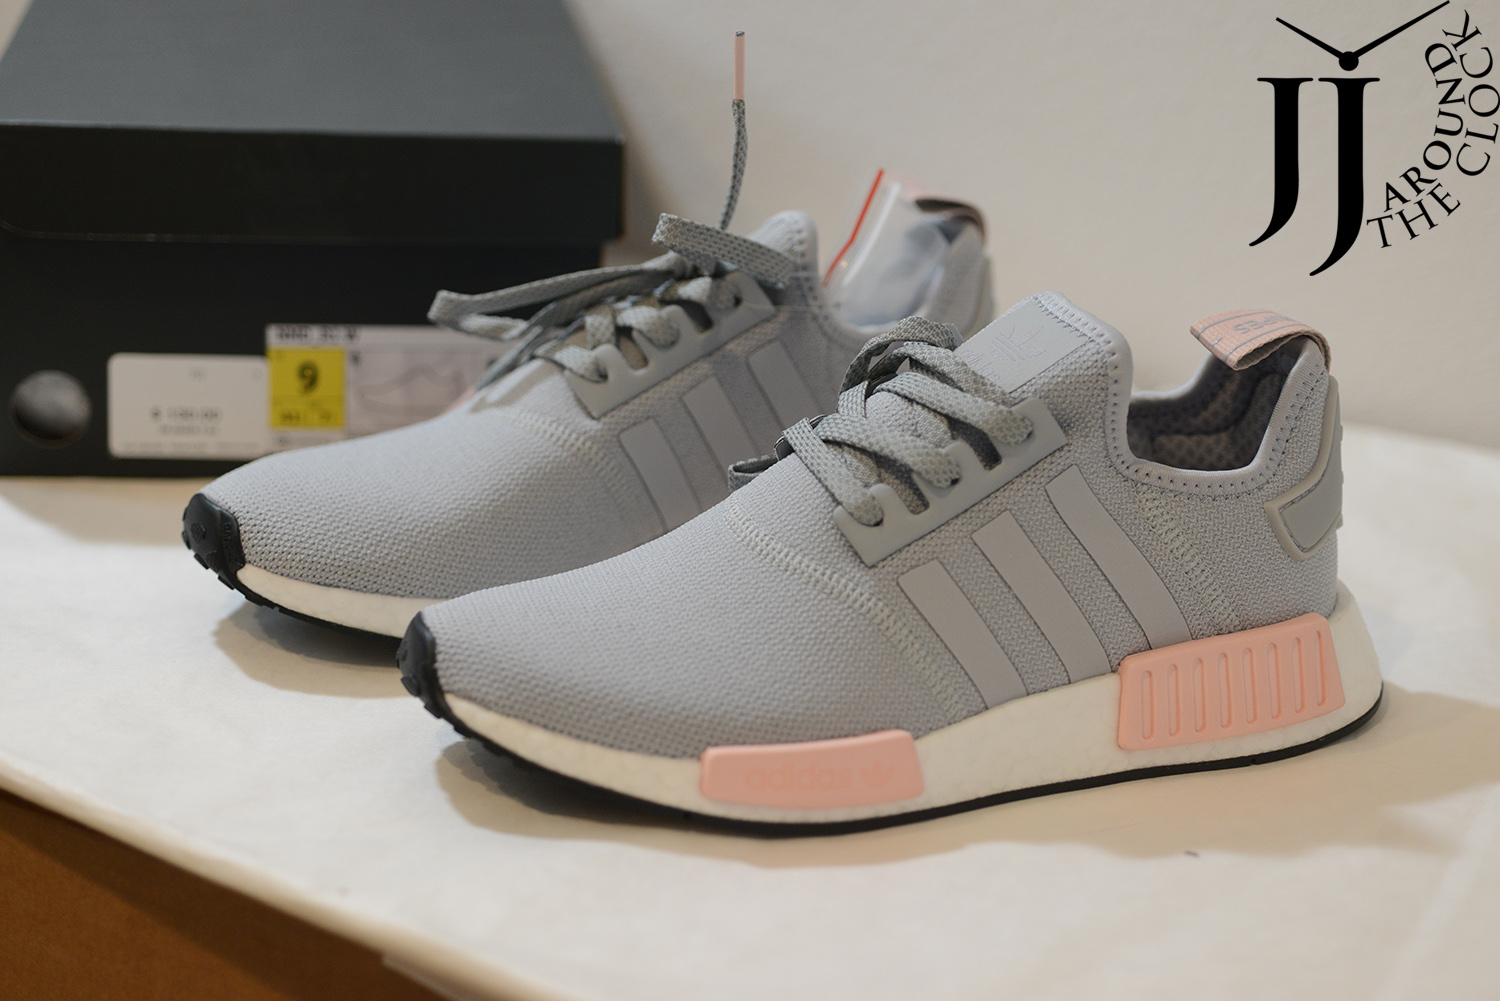 2fa0ba47c8439 Adidas Nmd Grey Pink kenmore-cleaning.co.uk